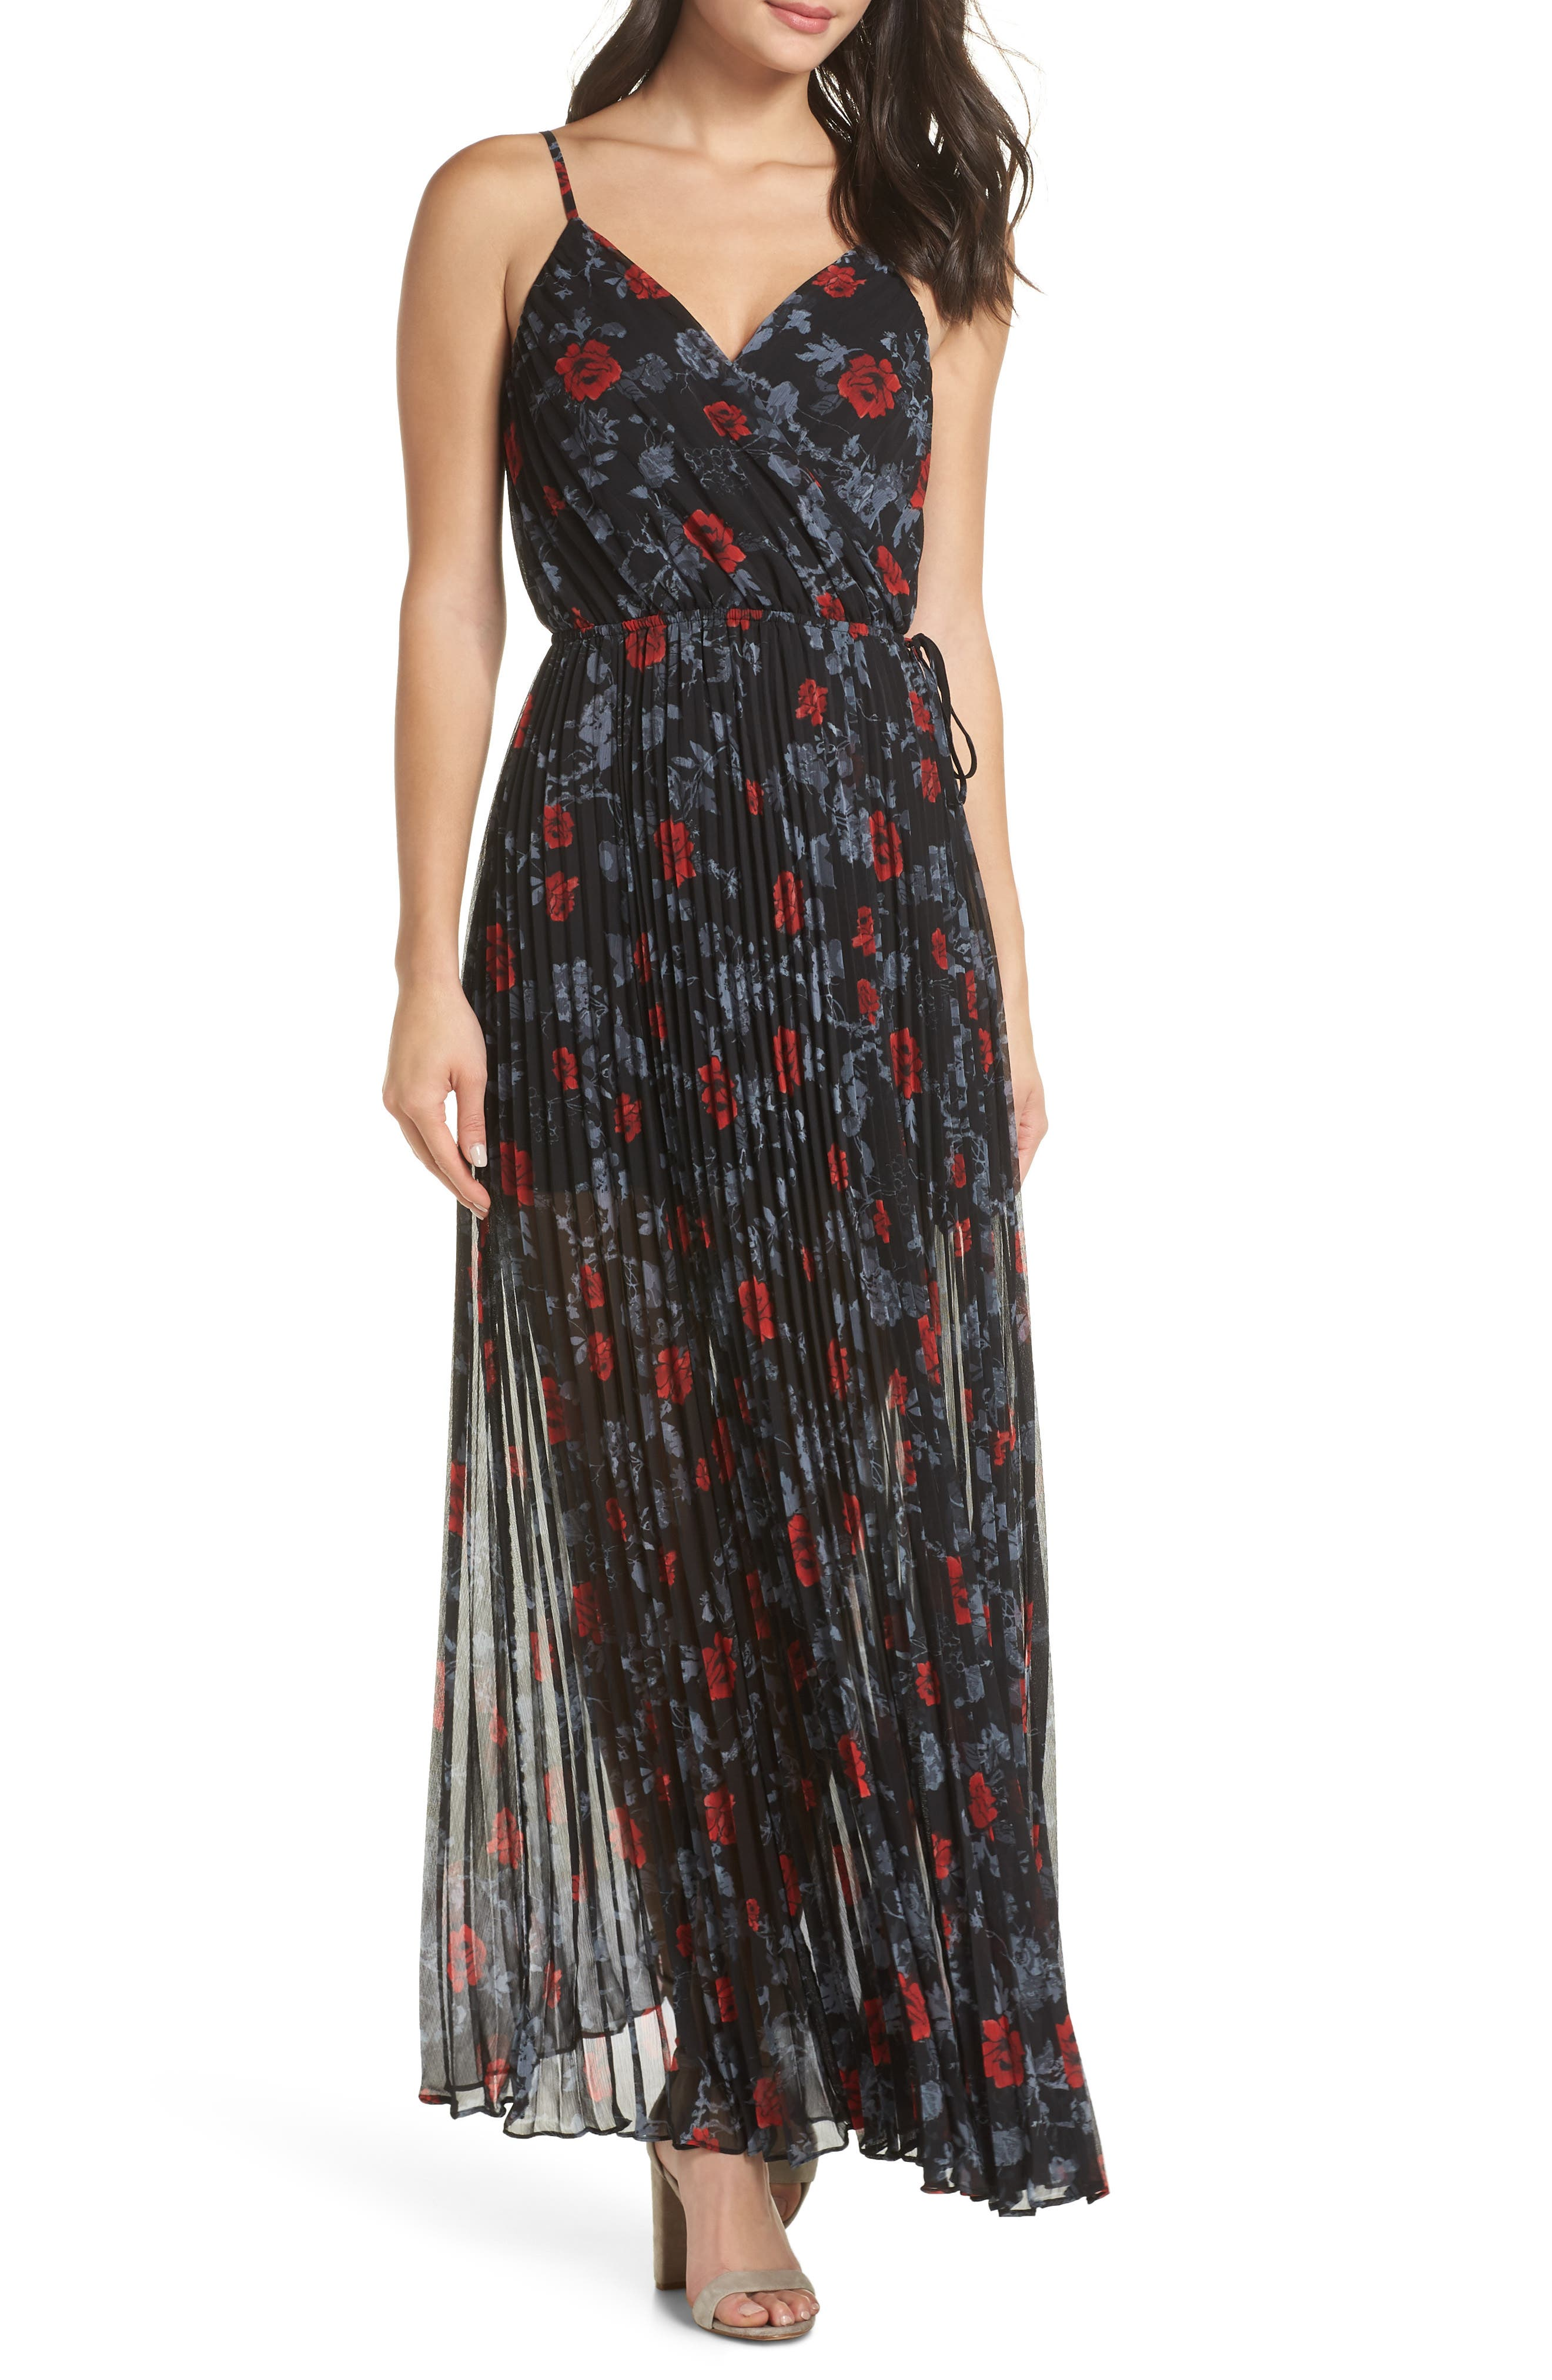 ALI & JAY, Roses Are Red Floral Pleated Maxi Dress, Main thumbnail 1, color, SCARLET ROSES